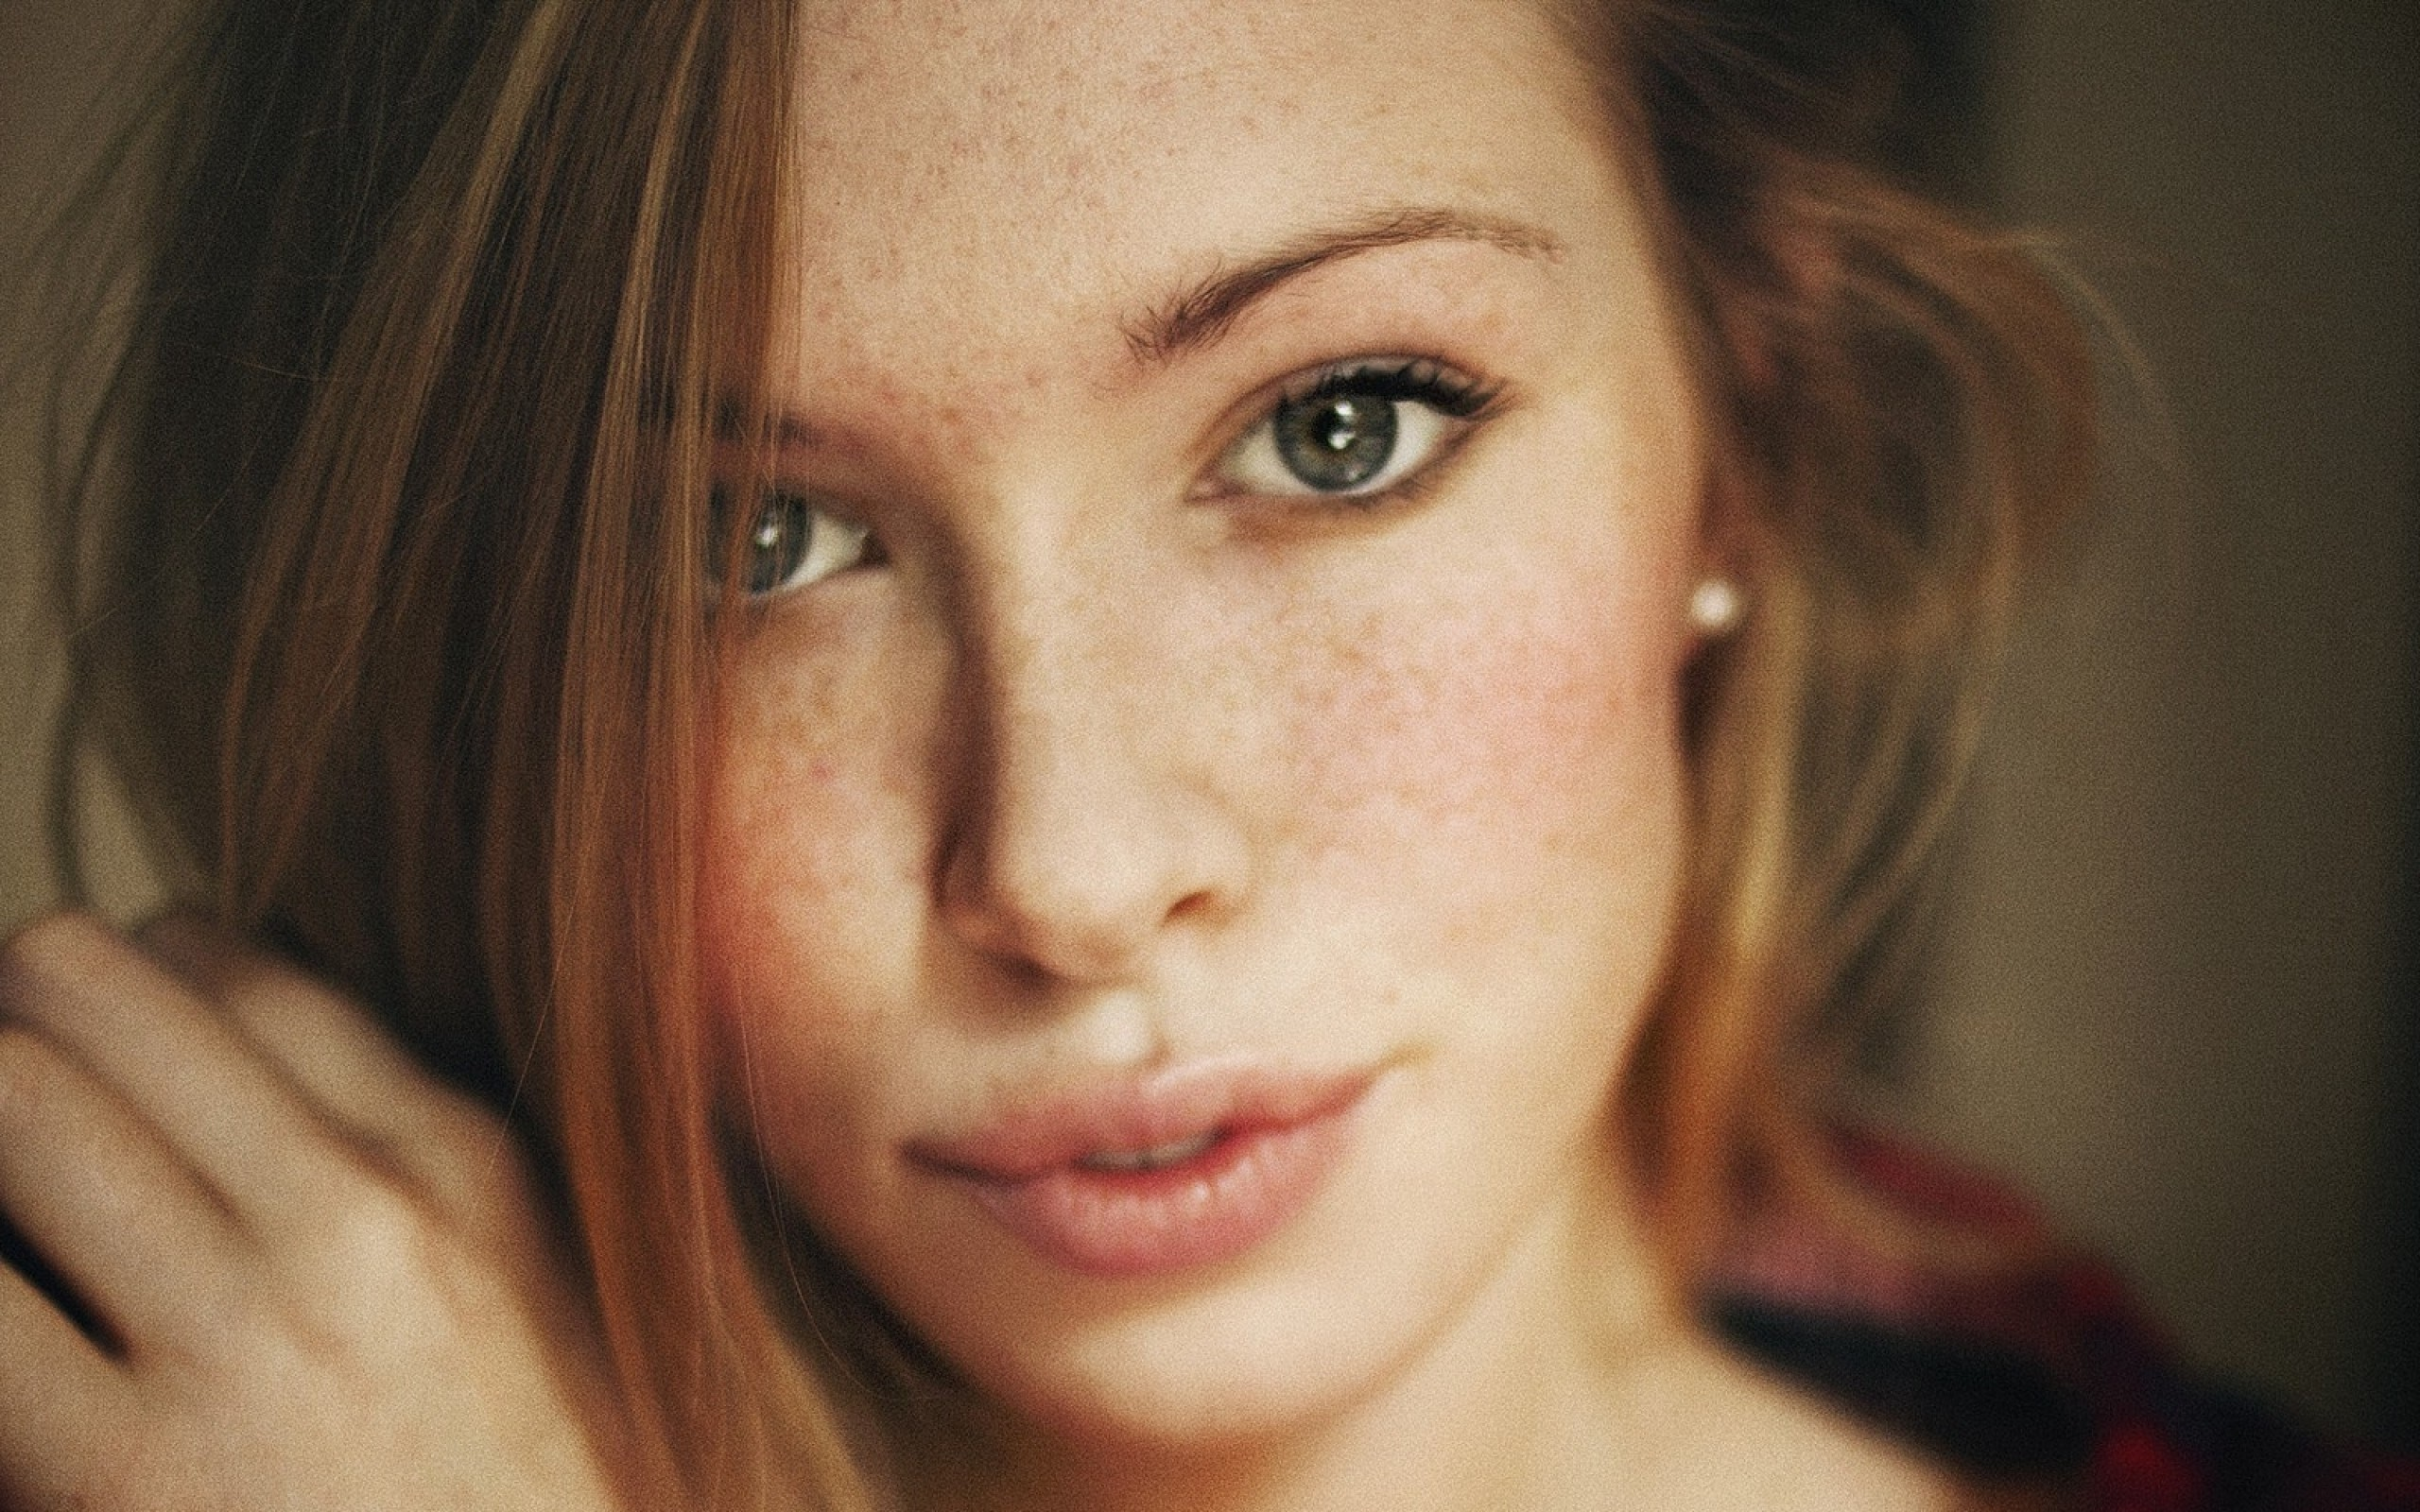 Portrait of a Pretty Face wallpapers and stock photos